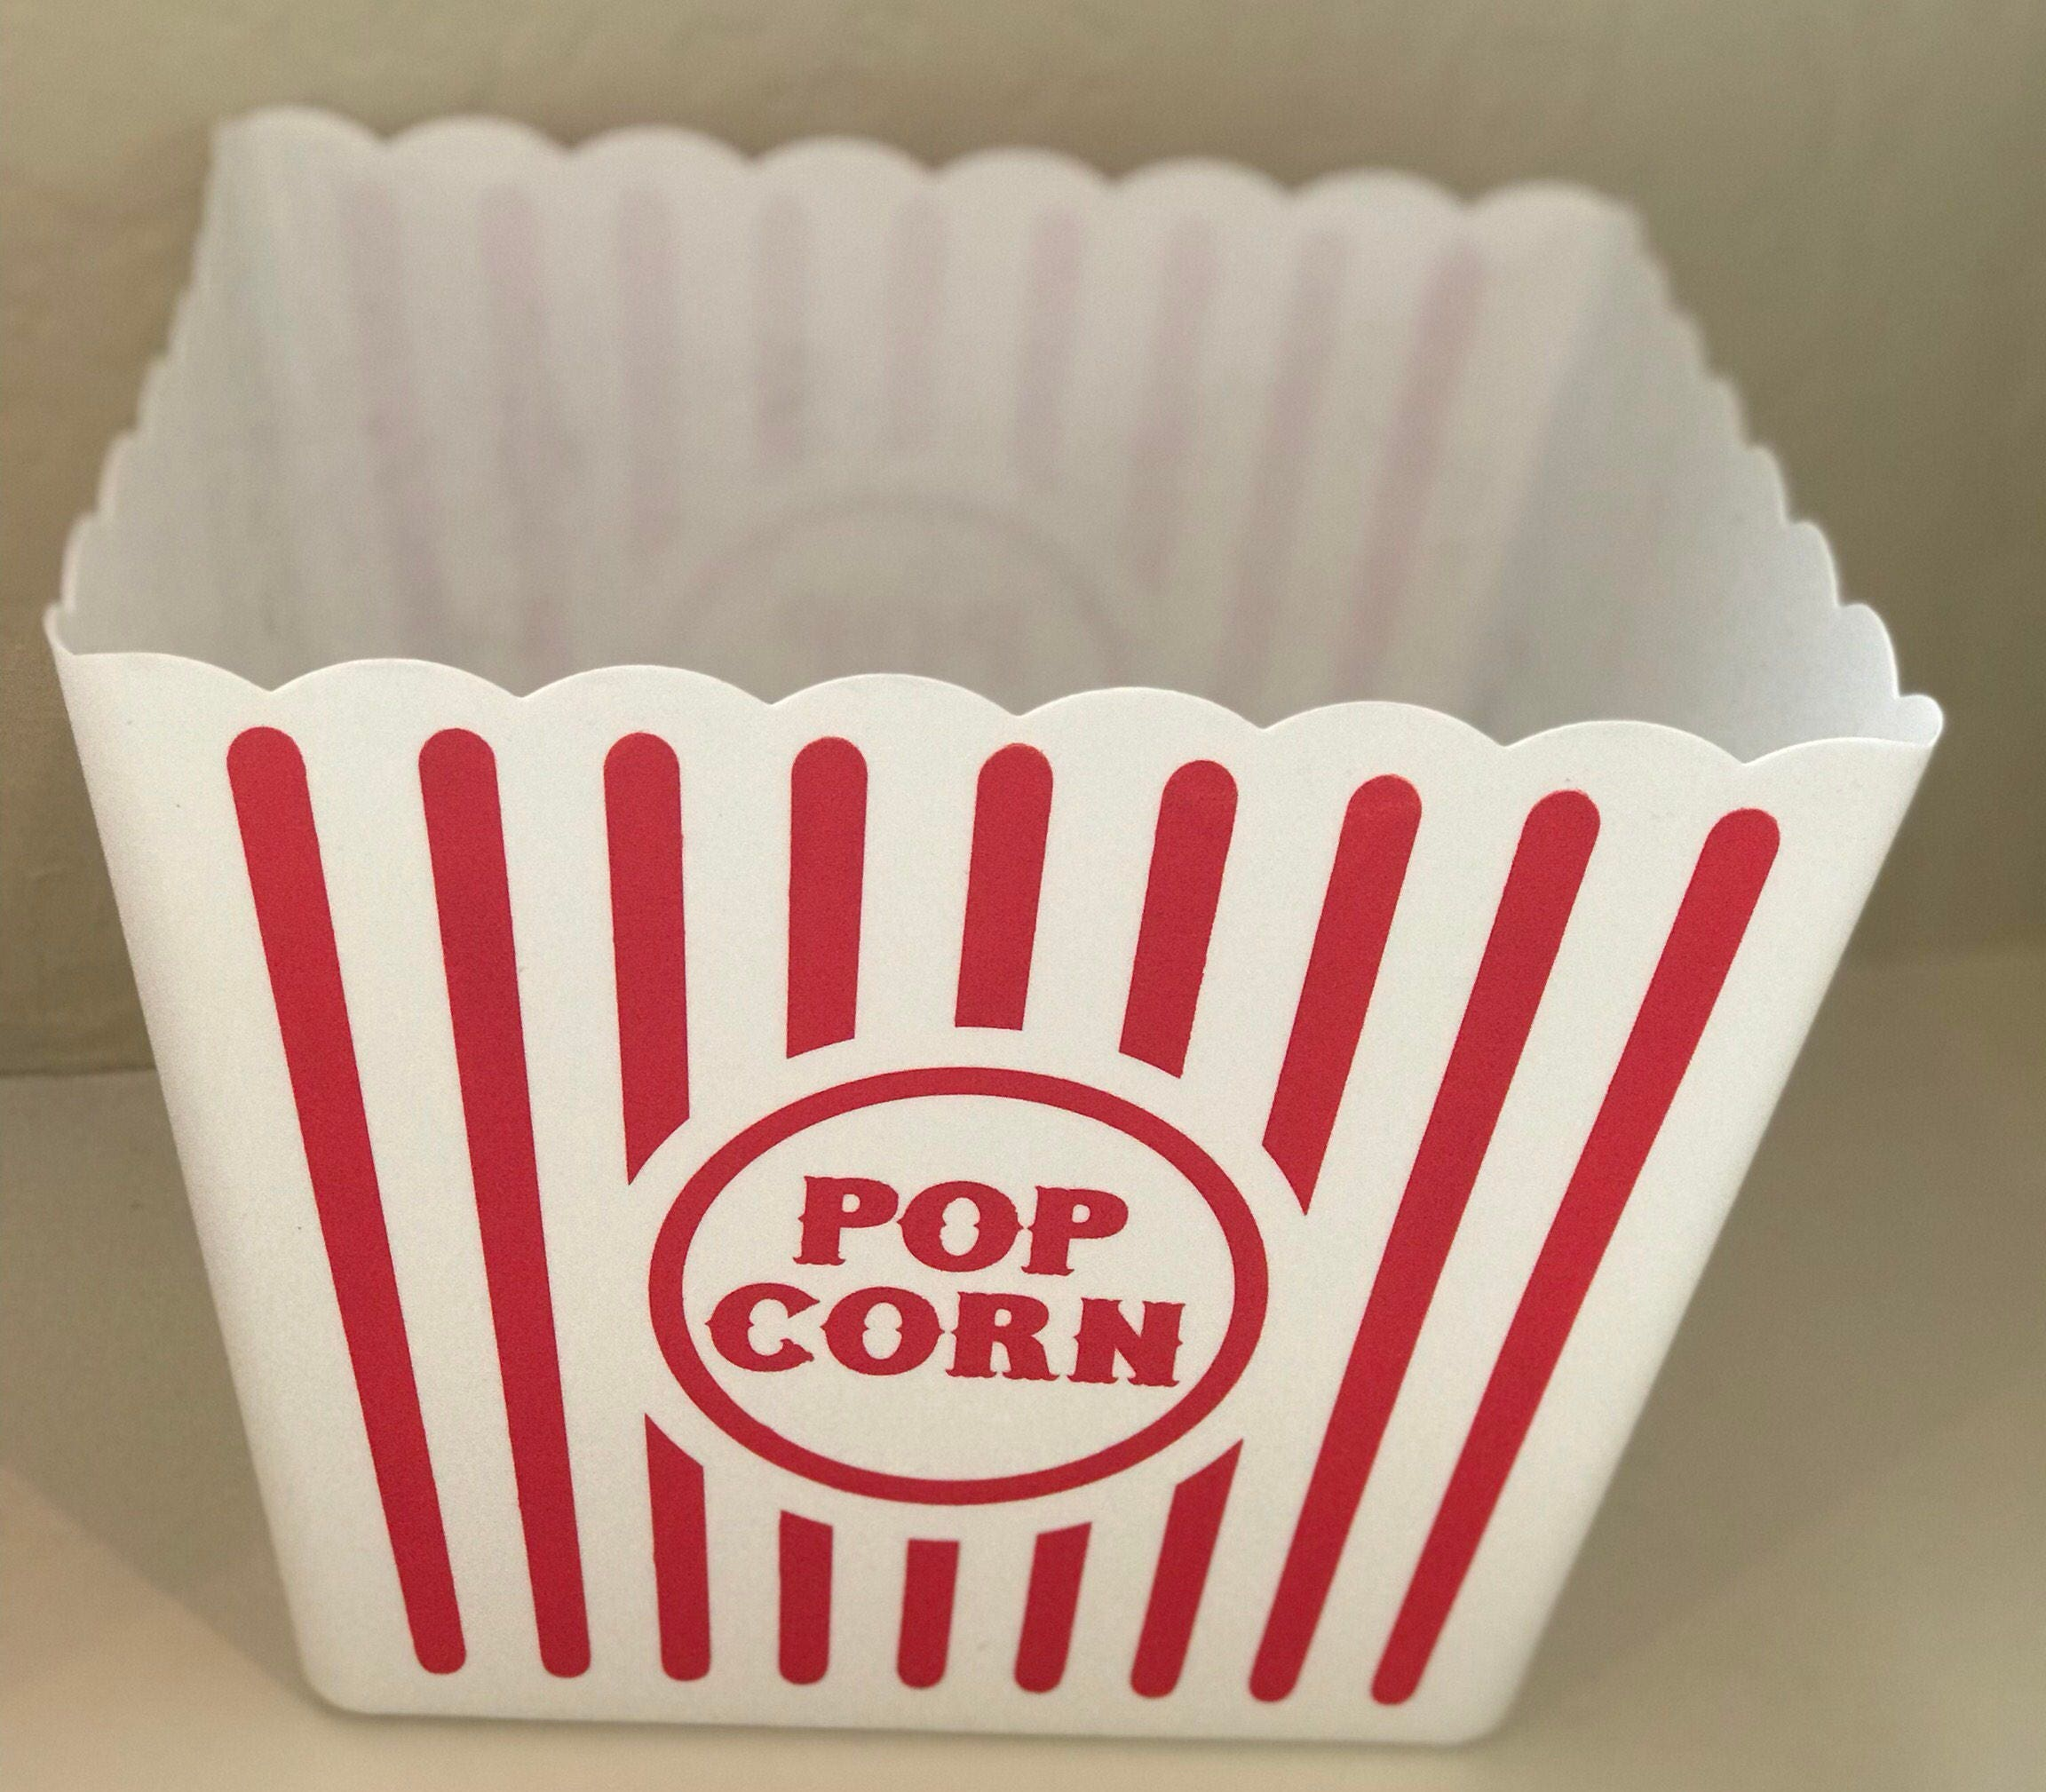 popcorn tubs change tubsclick com m original makers functionjunction tub image to popper kitchen tools